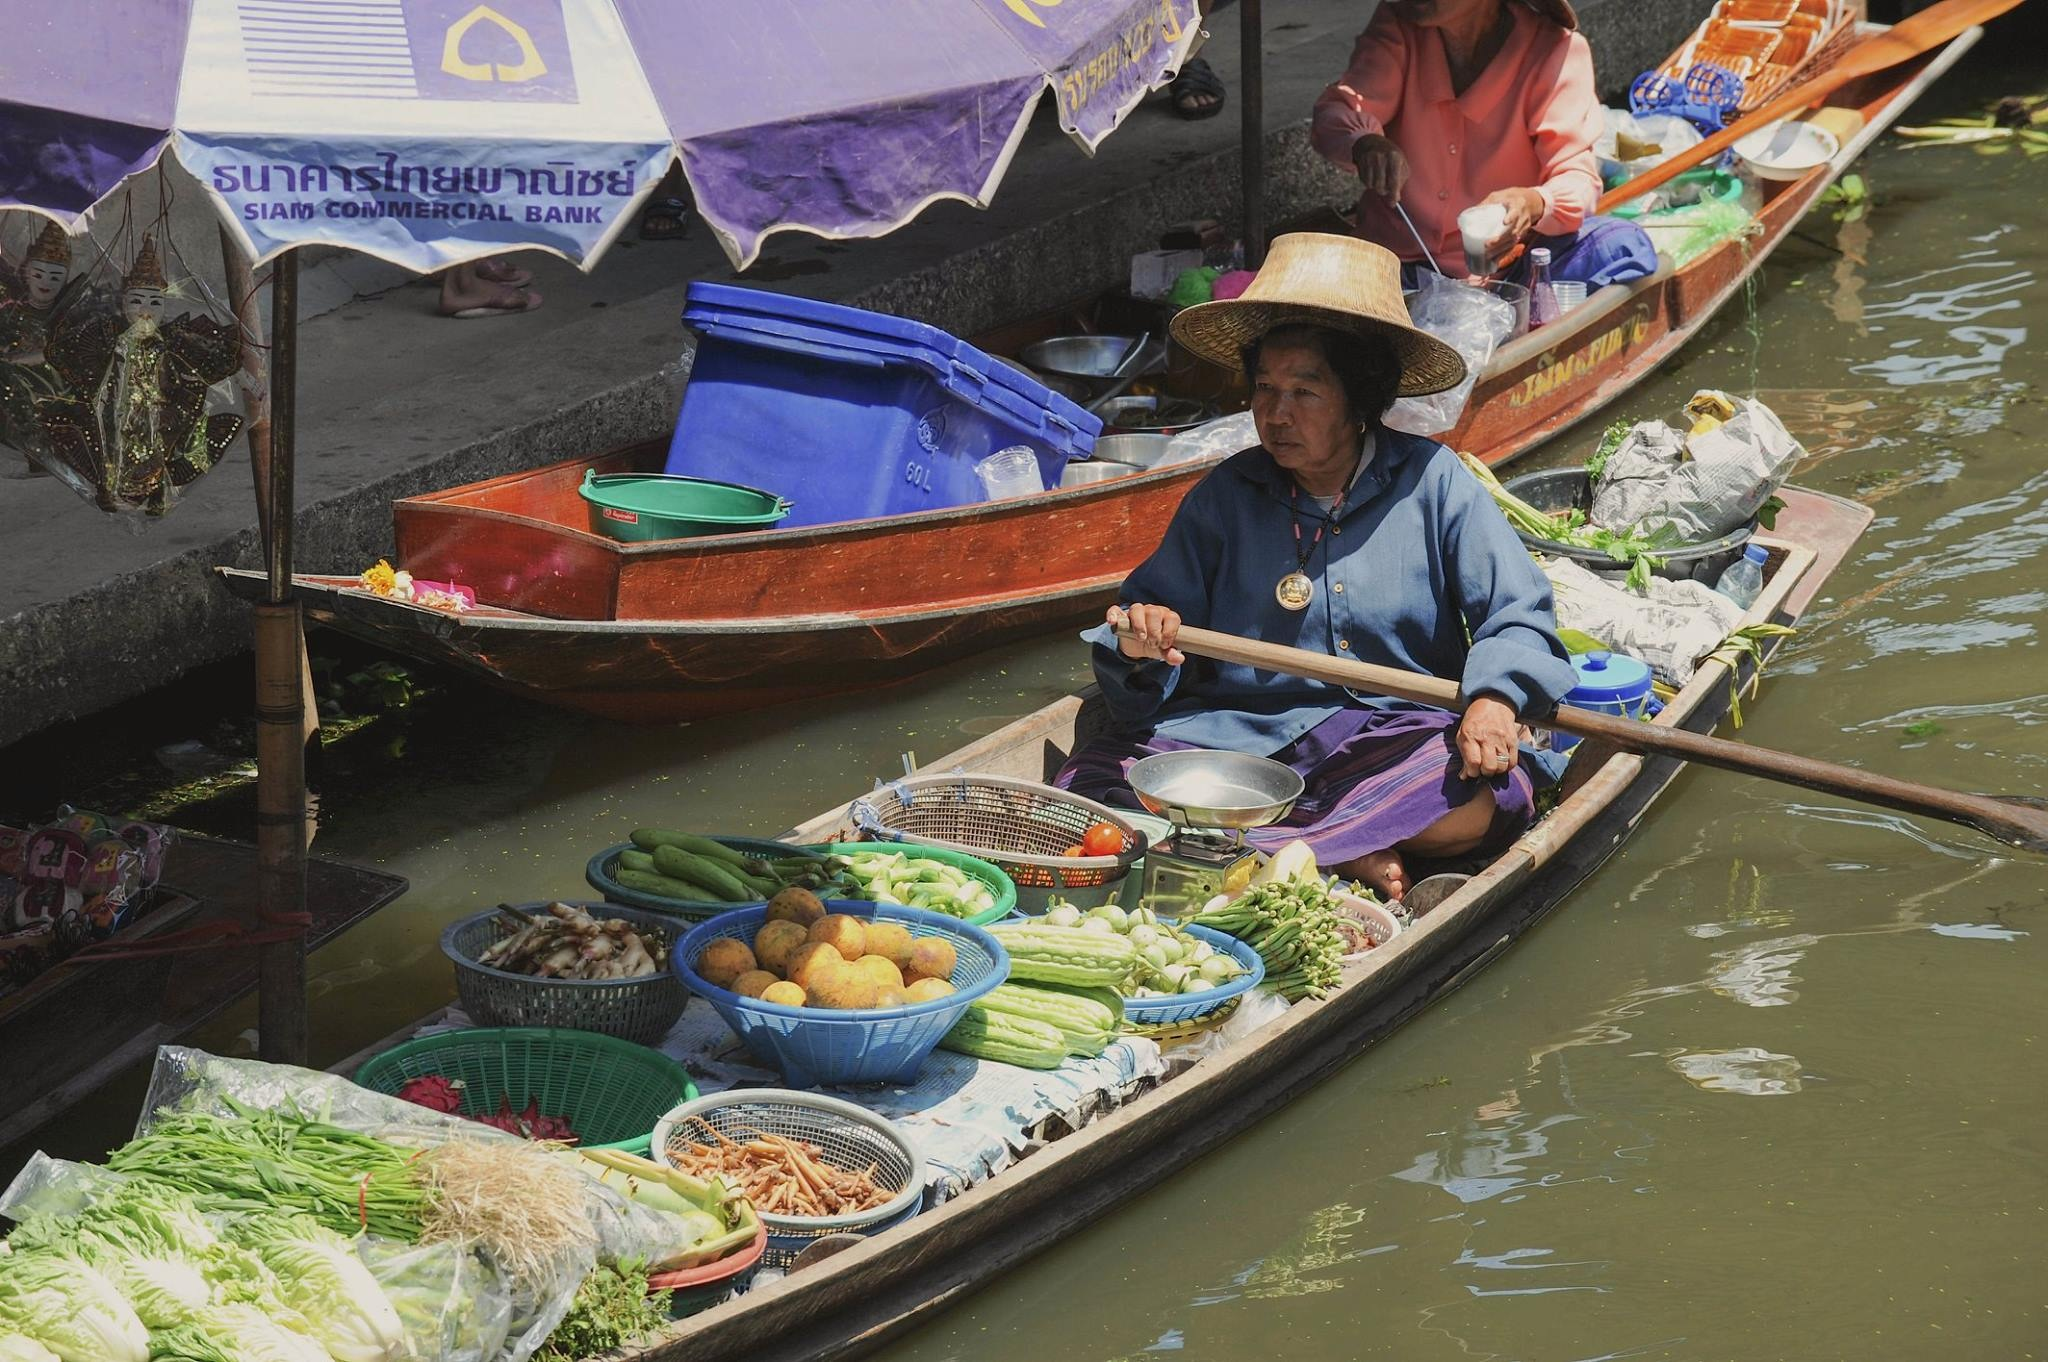 Floating market, Thailand 2017 by Robert Malin Young